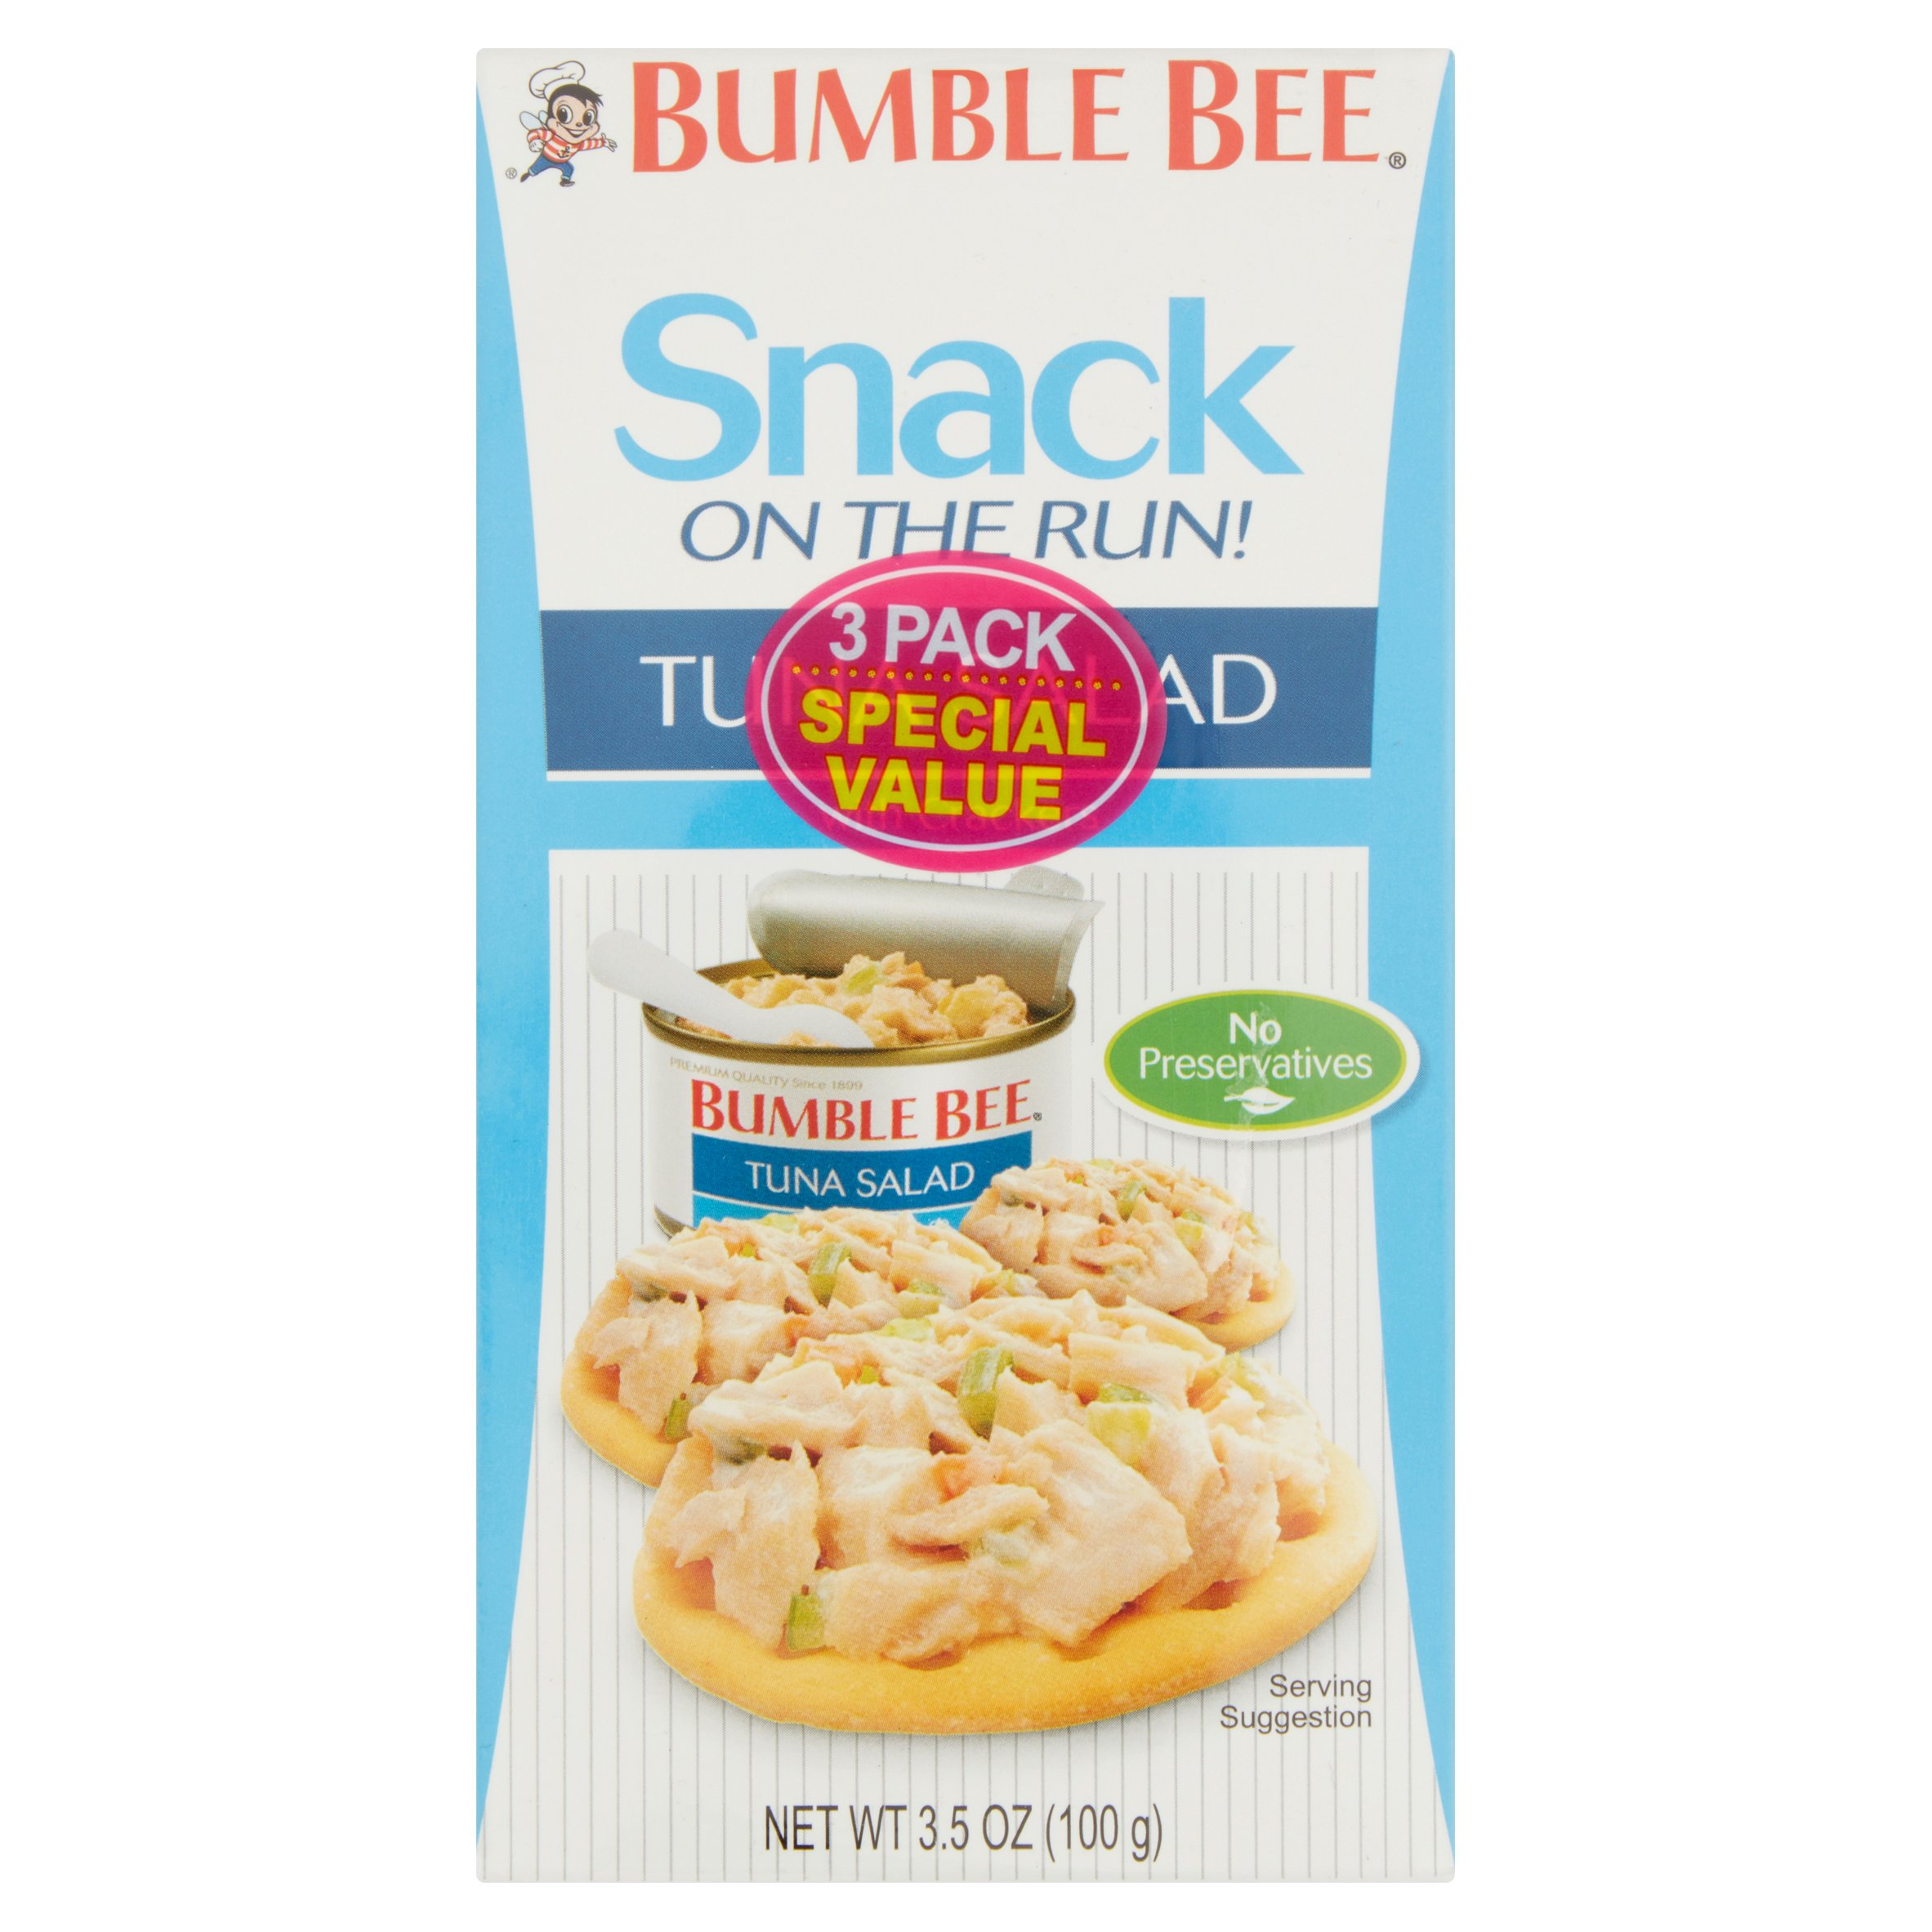 Bumble Bee Snack on the Run! Tuna Salad with Crackers, Good Source of Protein, 3.5 oz Kit, Pack of 3